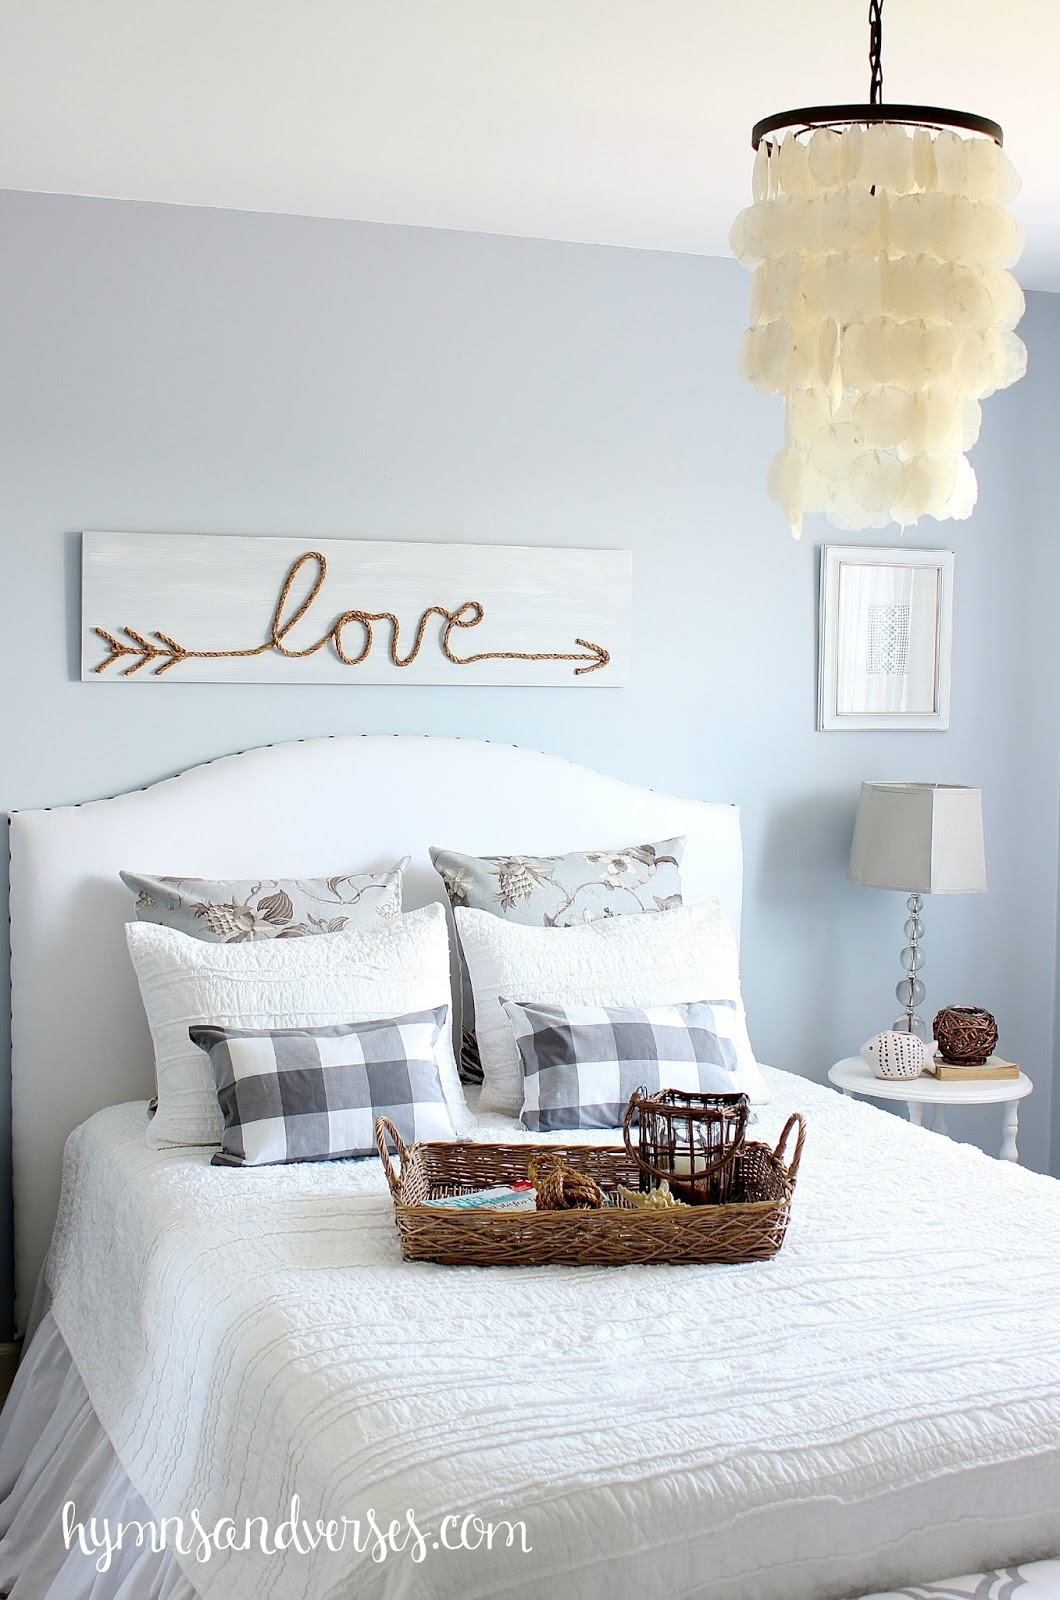 Diy jute rope love sign hymns and verses Cute bedroom wall ideas